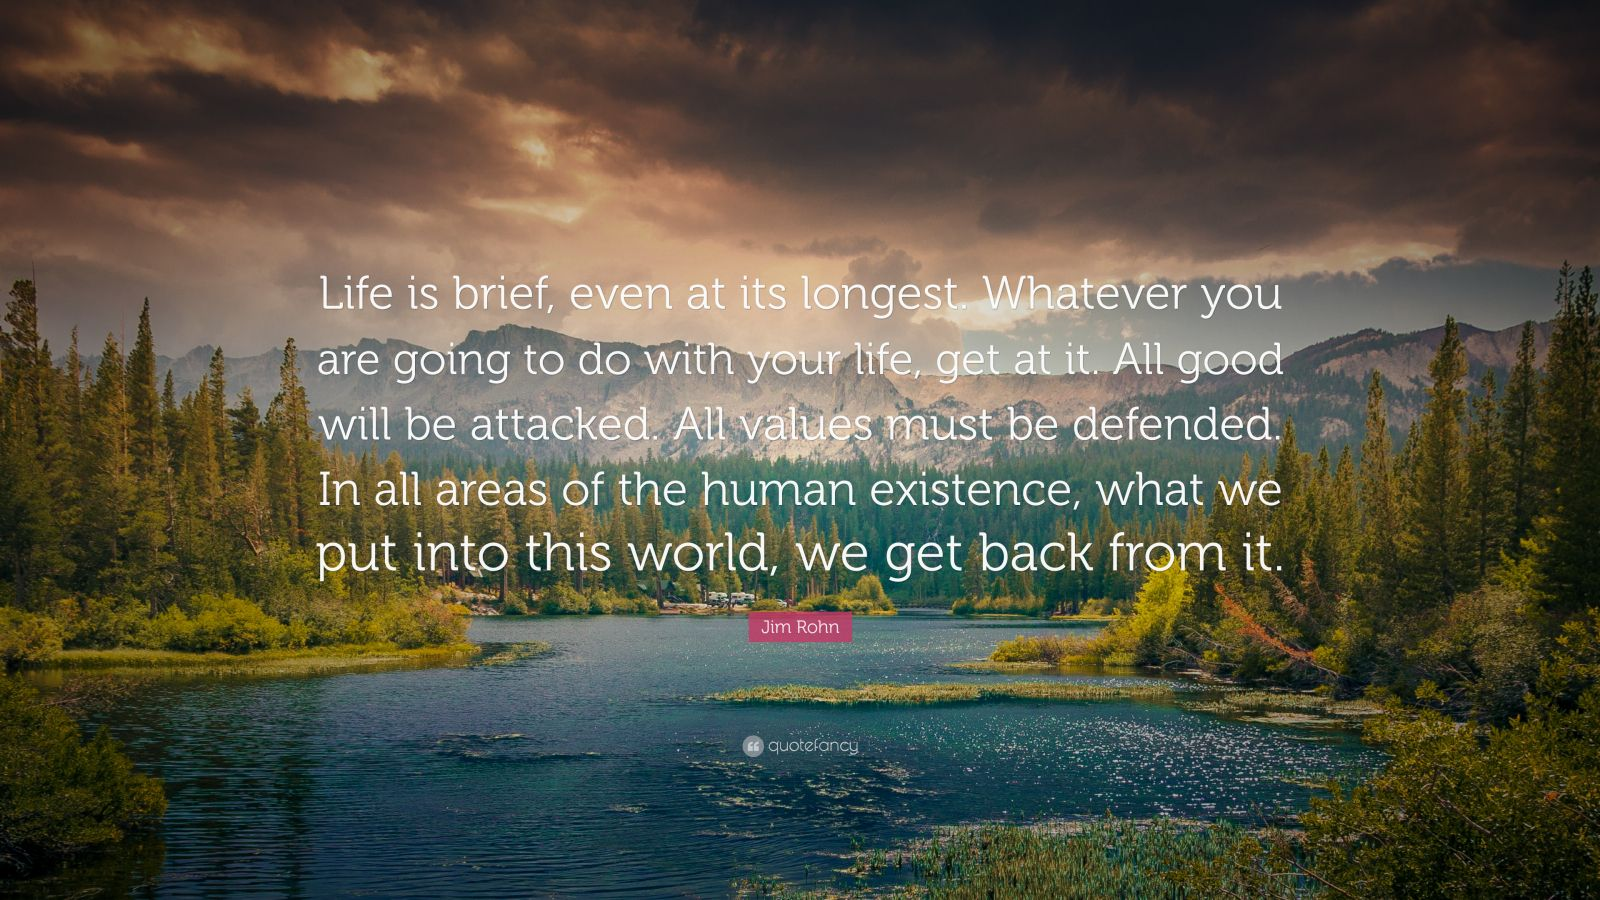 "Jim Rohn Quote: ""Life is brief, even at its longest. Whatever you are going to do with your life, get at it. All good will be attacked. All values must be defended. In all areas of the human existence, what we put into this world, we get back from it."""